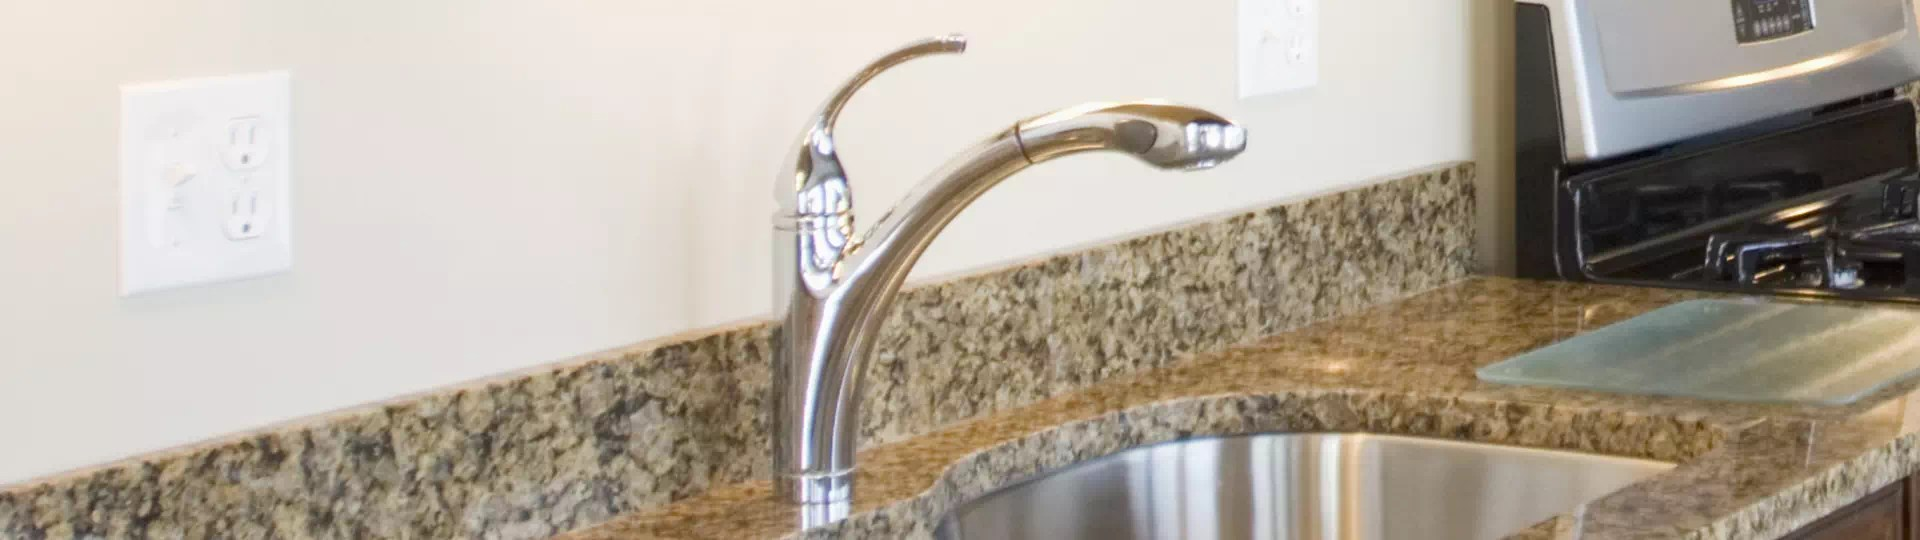 to clean stainless steel kitchen faucet